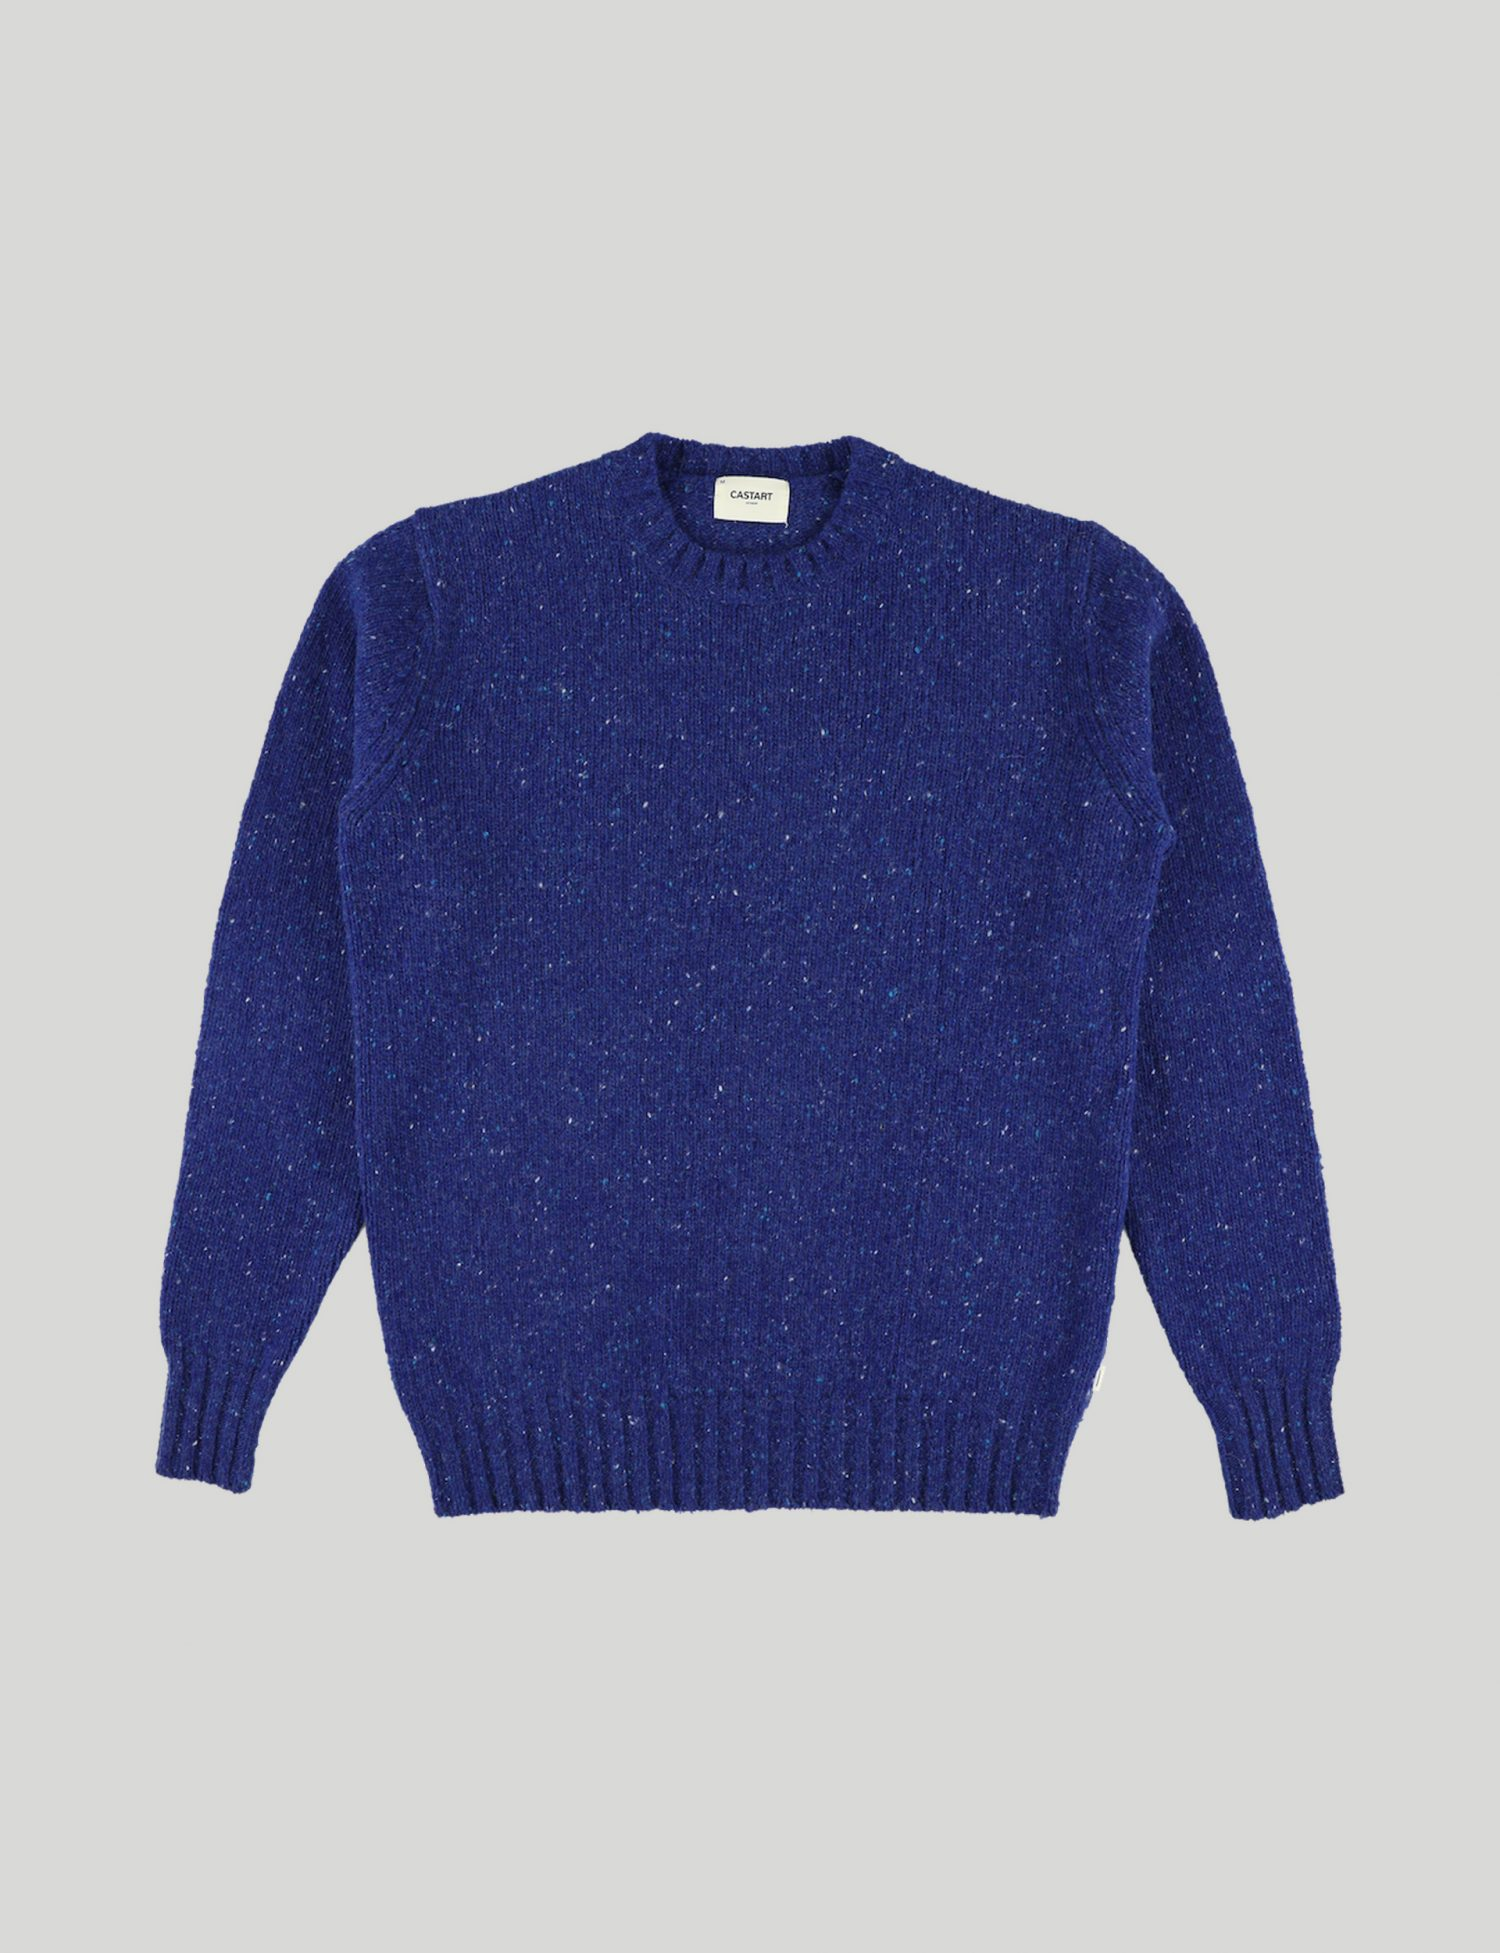 Castart - Wassily - French Blue